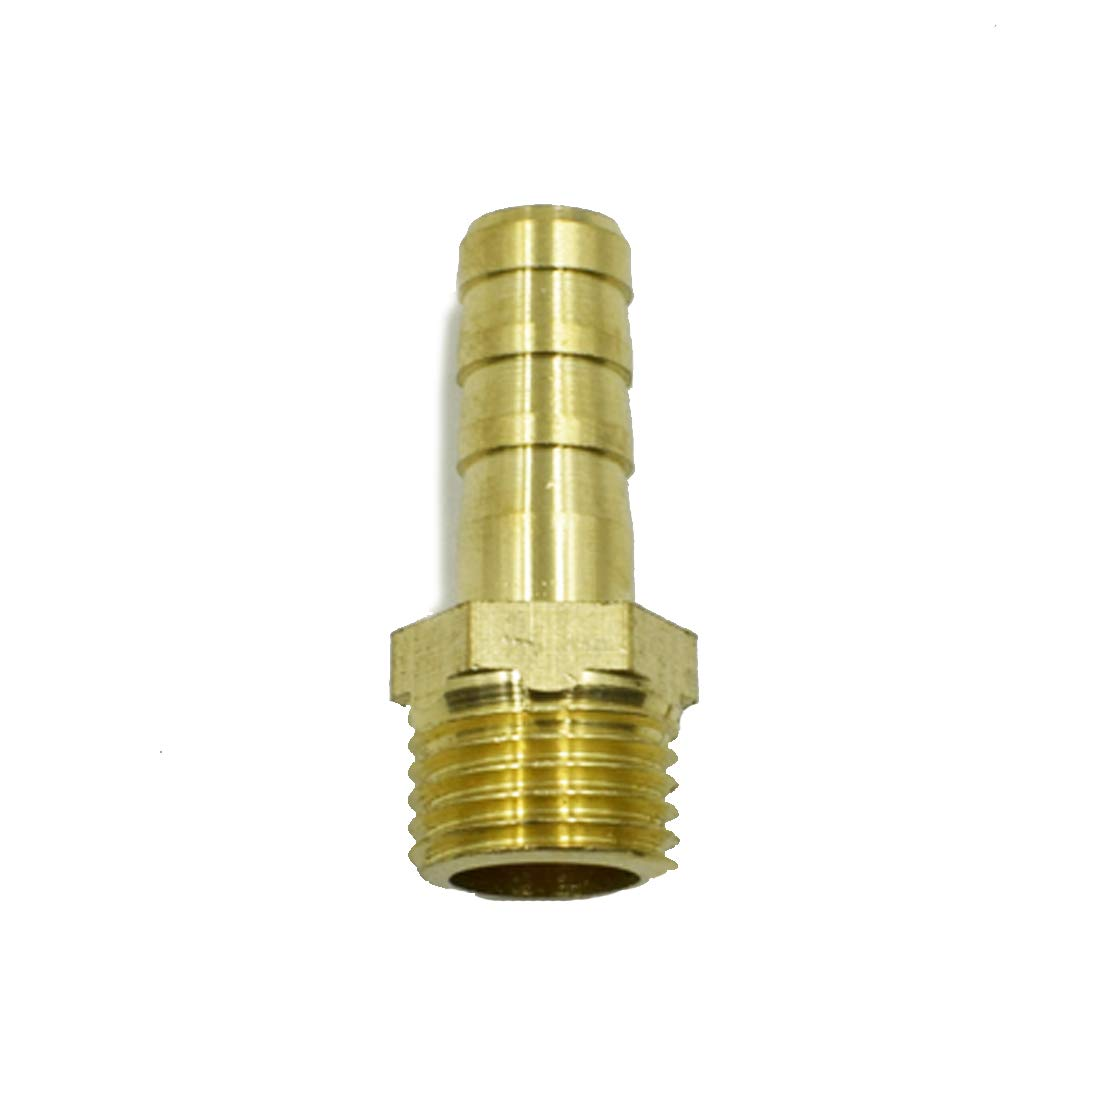 5PCS TOUHIA 7//16 Barb x 1//4 NPT Male Pipe Brass Hose Fitting Adapter